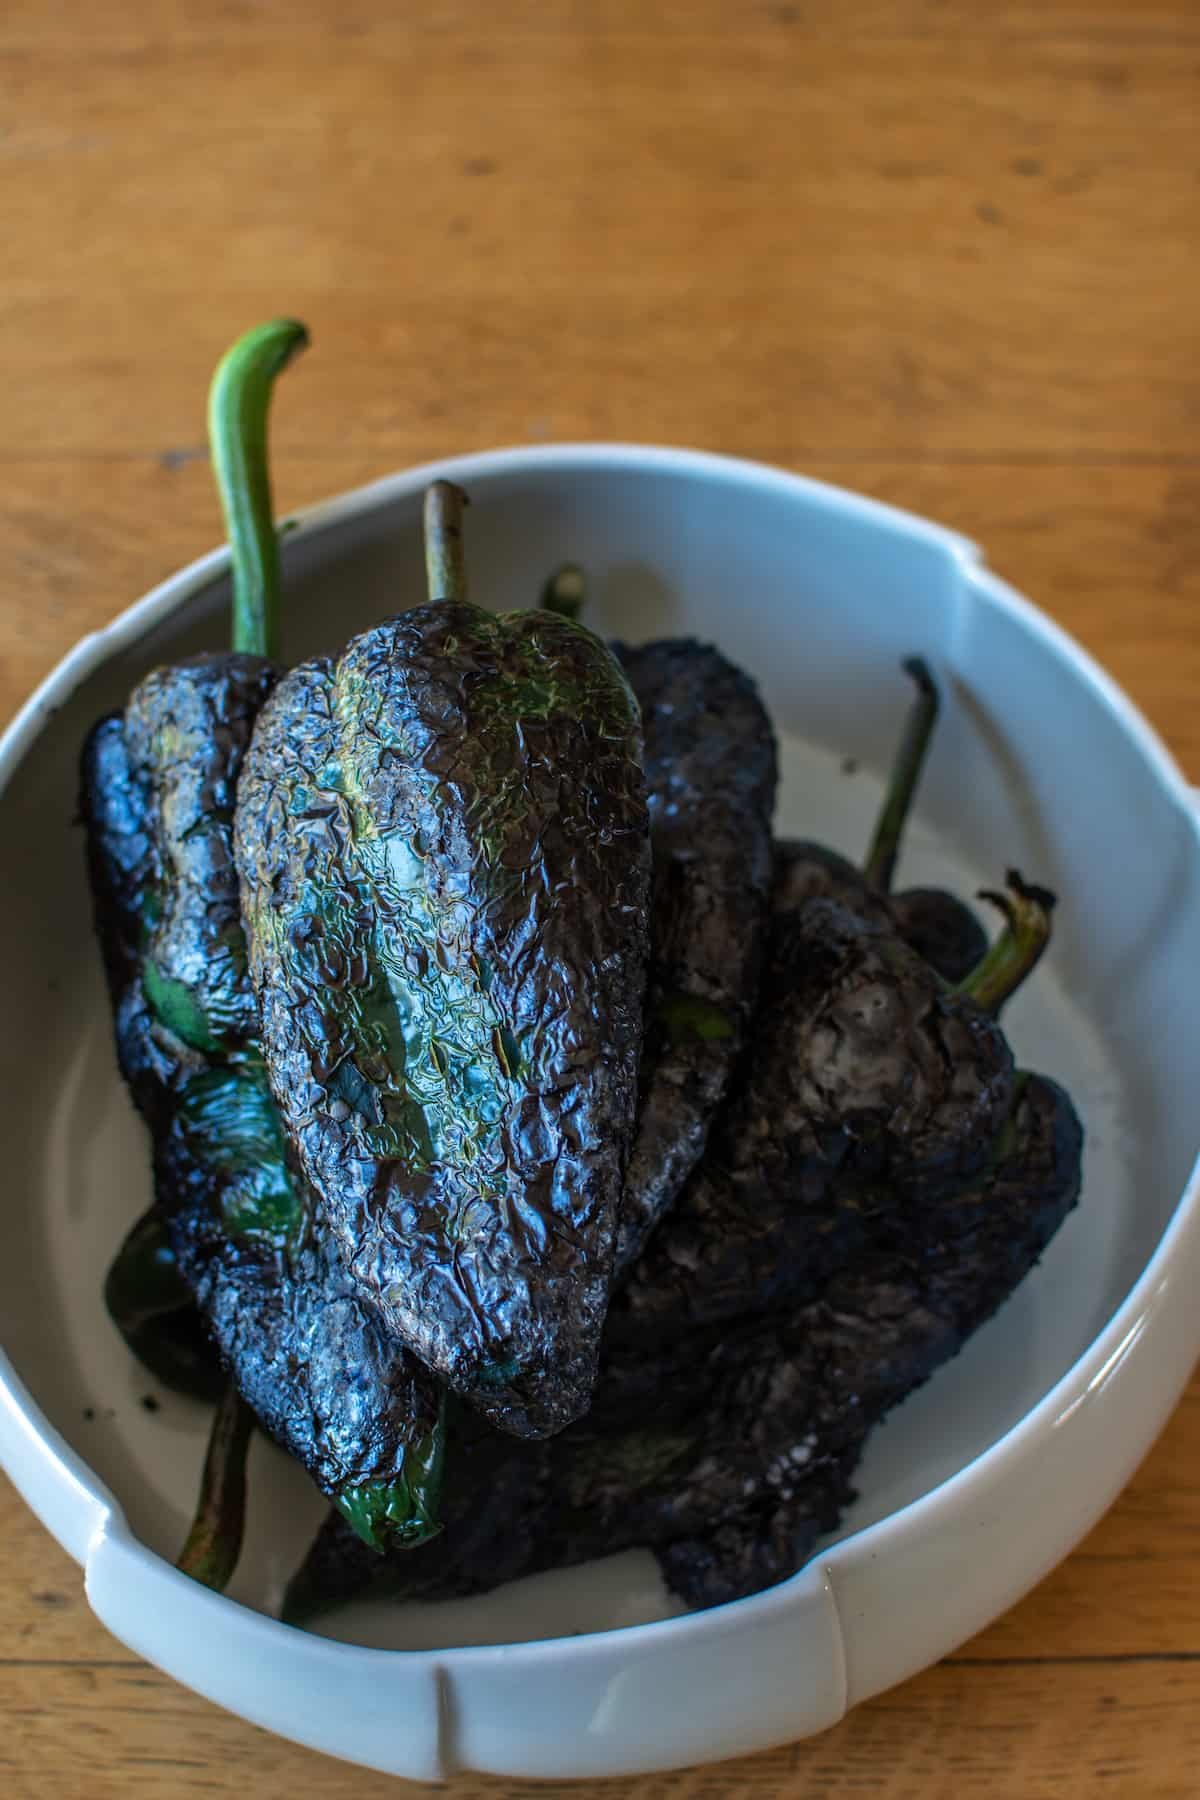 Several charred Chile Rellenos in a white bowl sitting on a wood table.